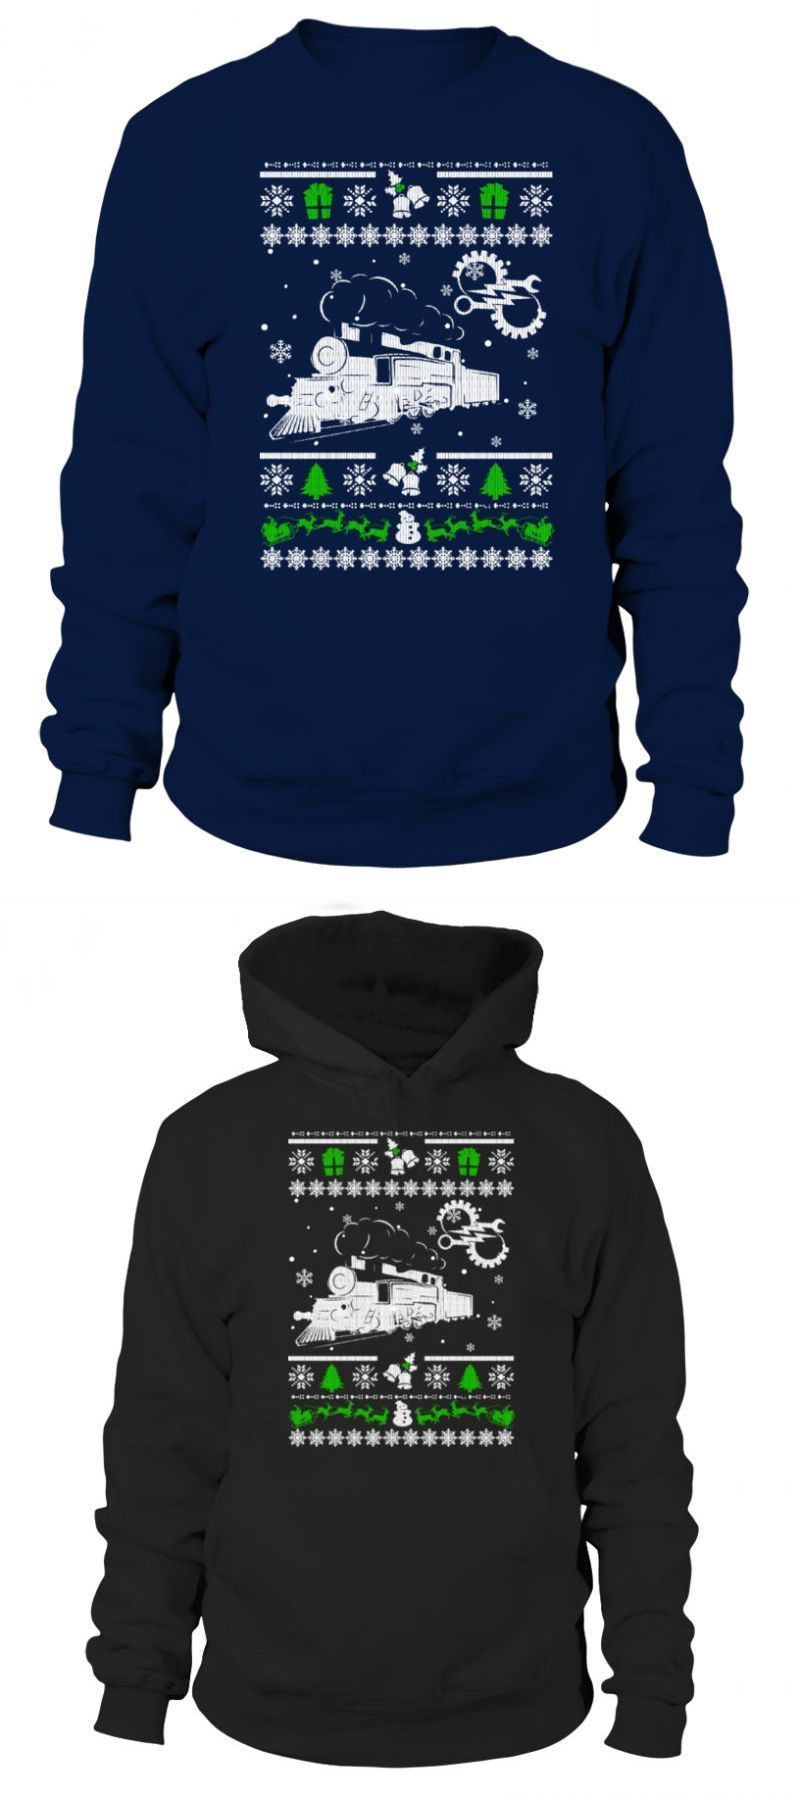 a529c9a7d Ugly christmas sweater railroad engineer fitness center t shirt designs # ugly #christmas #sweater #railroad #engineer #fitness #center #shirt # designs ...